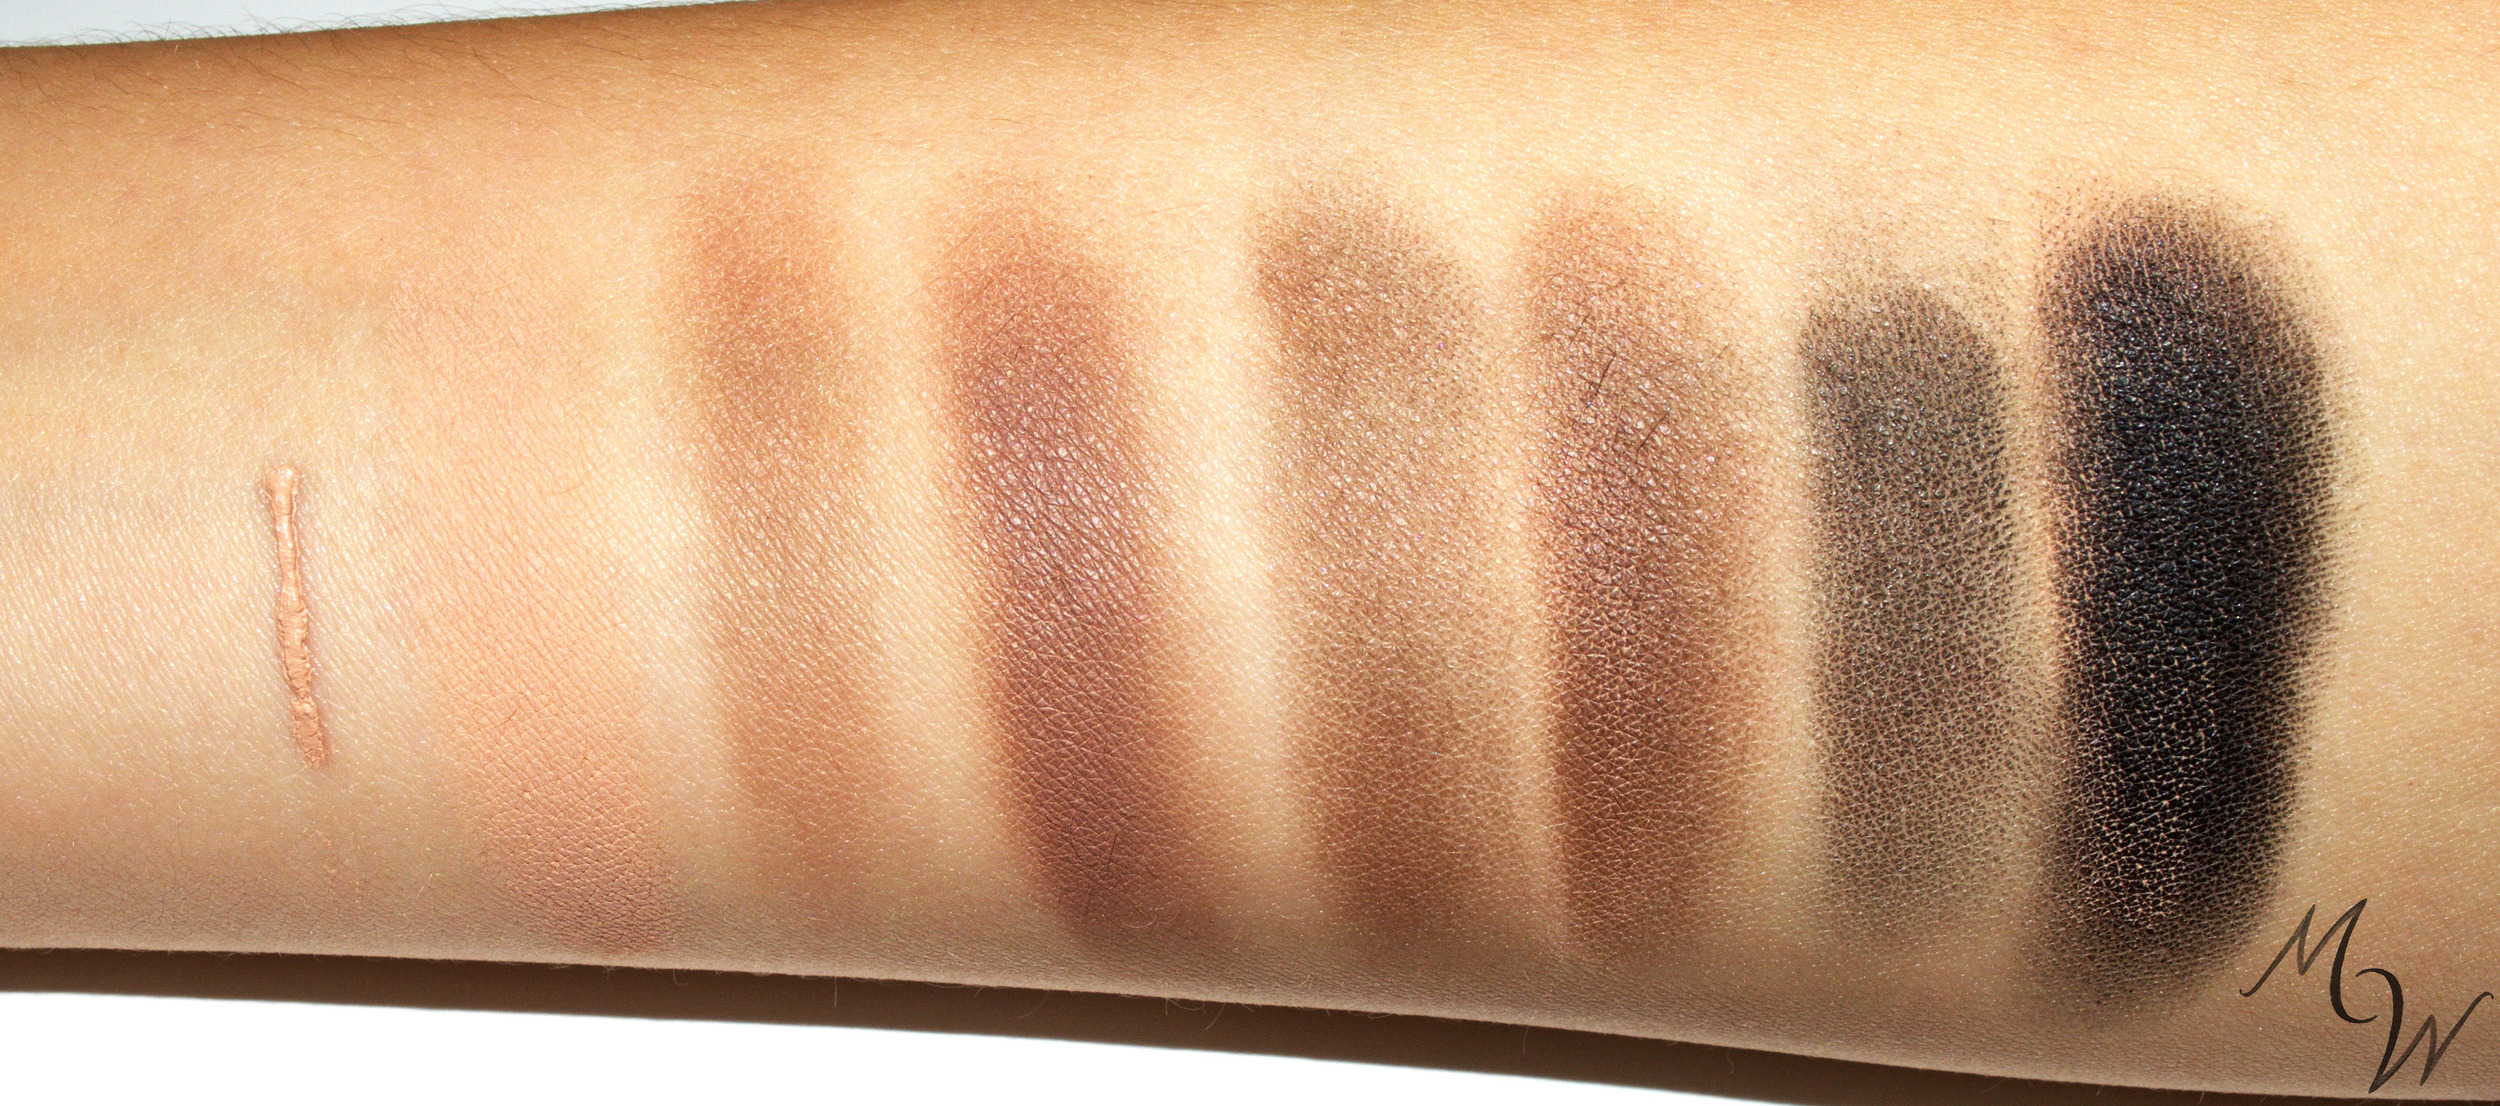 Brightening Eyeshadow Primer and Mineral Eyeshadows in Earth, Espresso, and Night alone and over Primer—with flash.